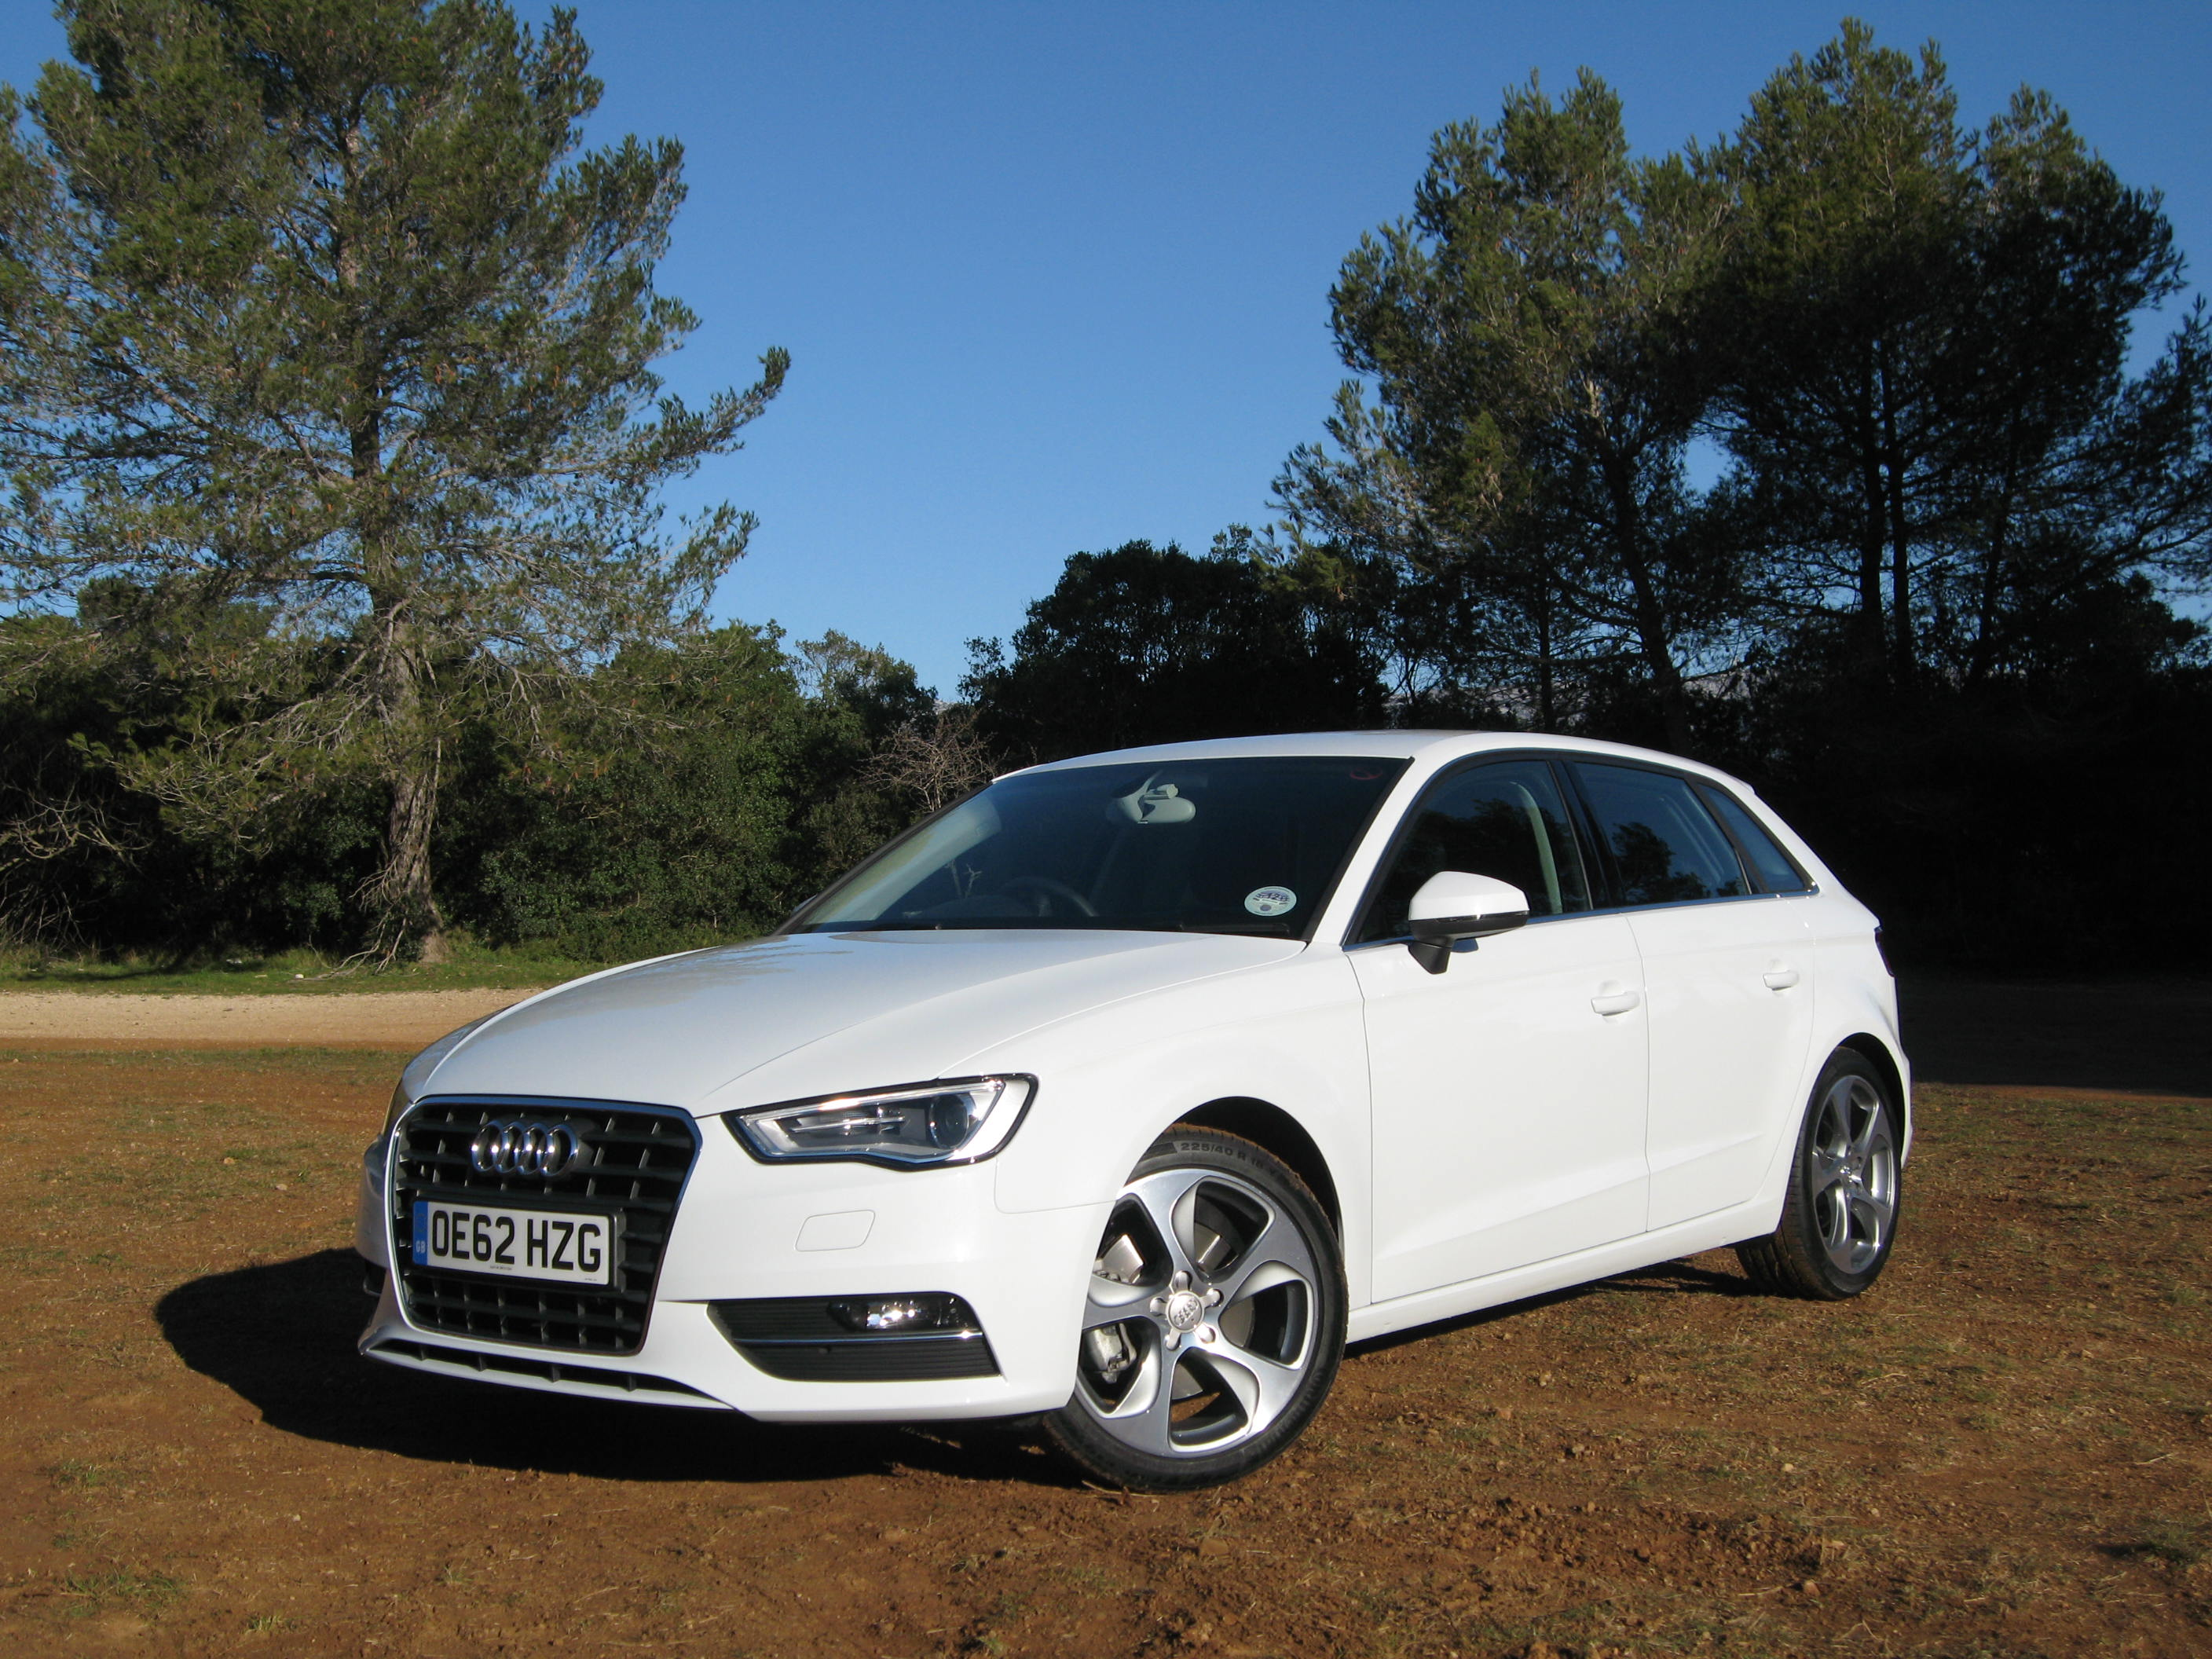 audi a3 sportback road test proves it 39 s lost none of its practicality. Black Bedroom Furniture Sets. Home Design Ideas